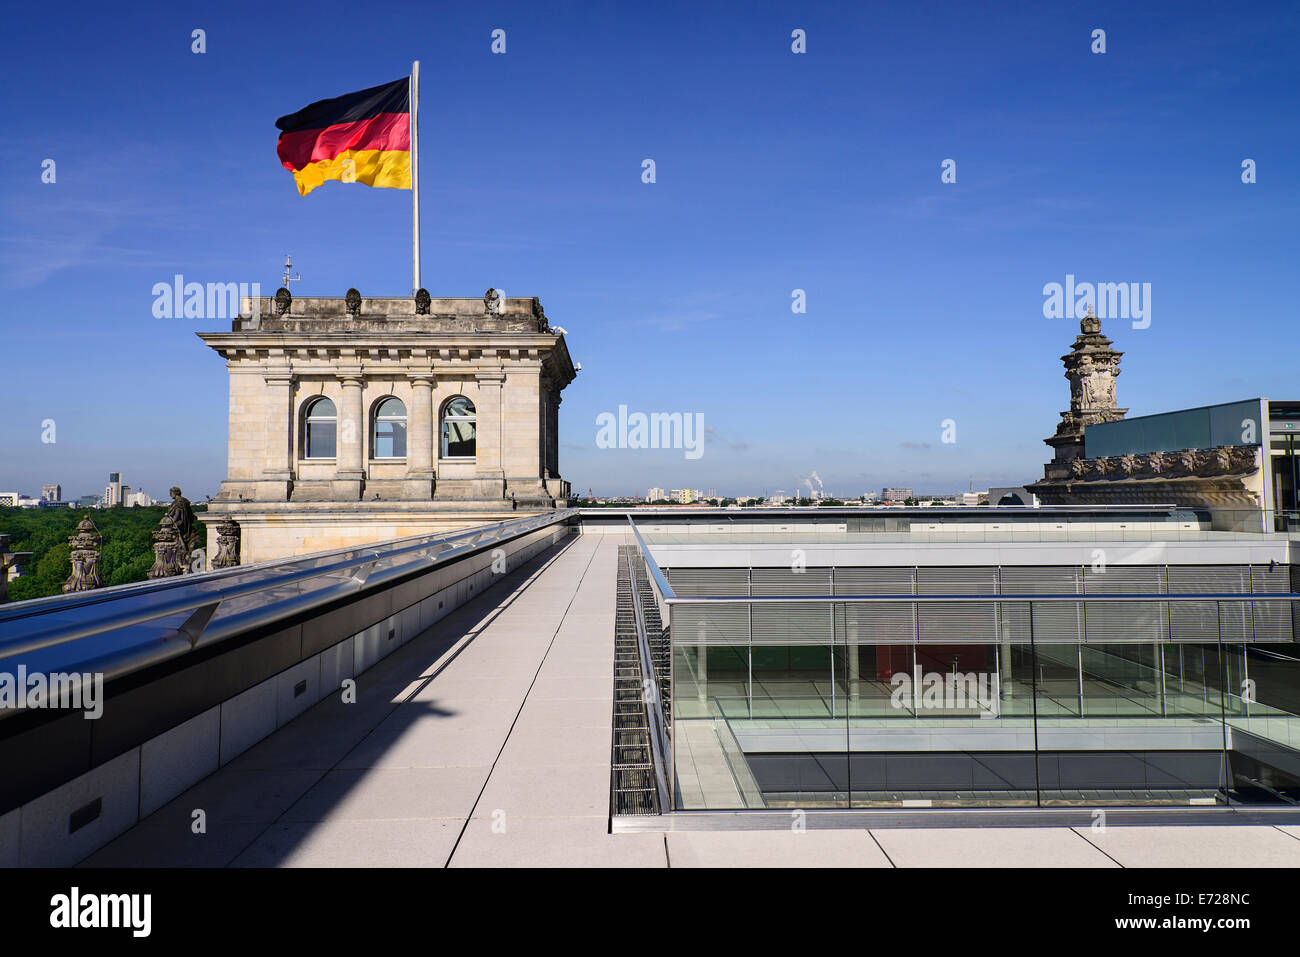 Germany, Berlin, German flag fluttering on a corner tower of the Reichstag building as seen from the rooftop terrace. - Stock Image